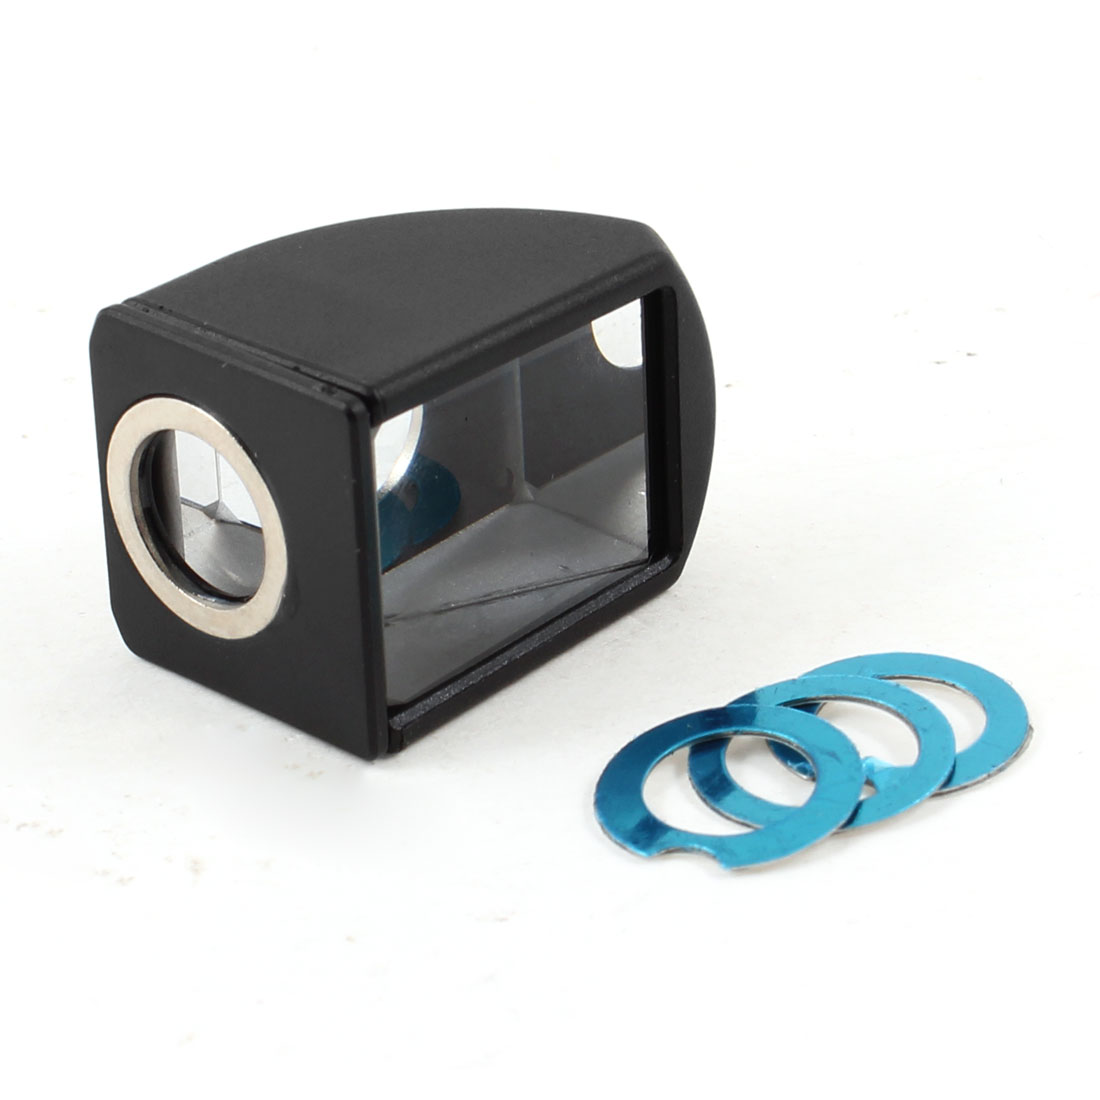 Detachable Magnetic Multi Angle Shooting Periscope Camera Lens for Cellphone